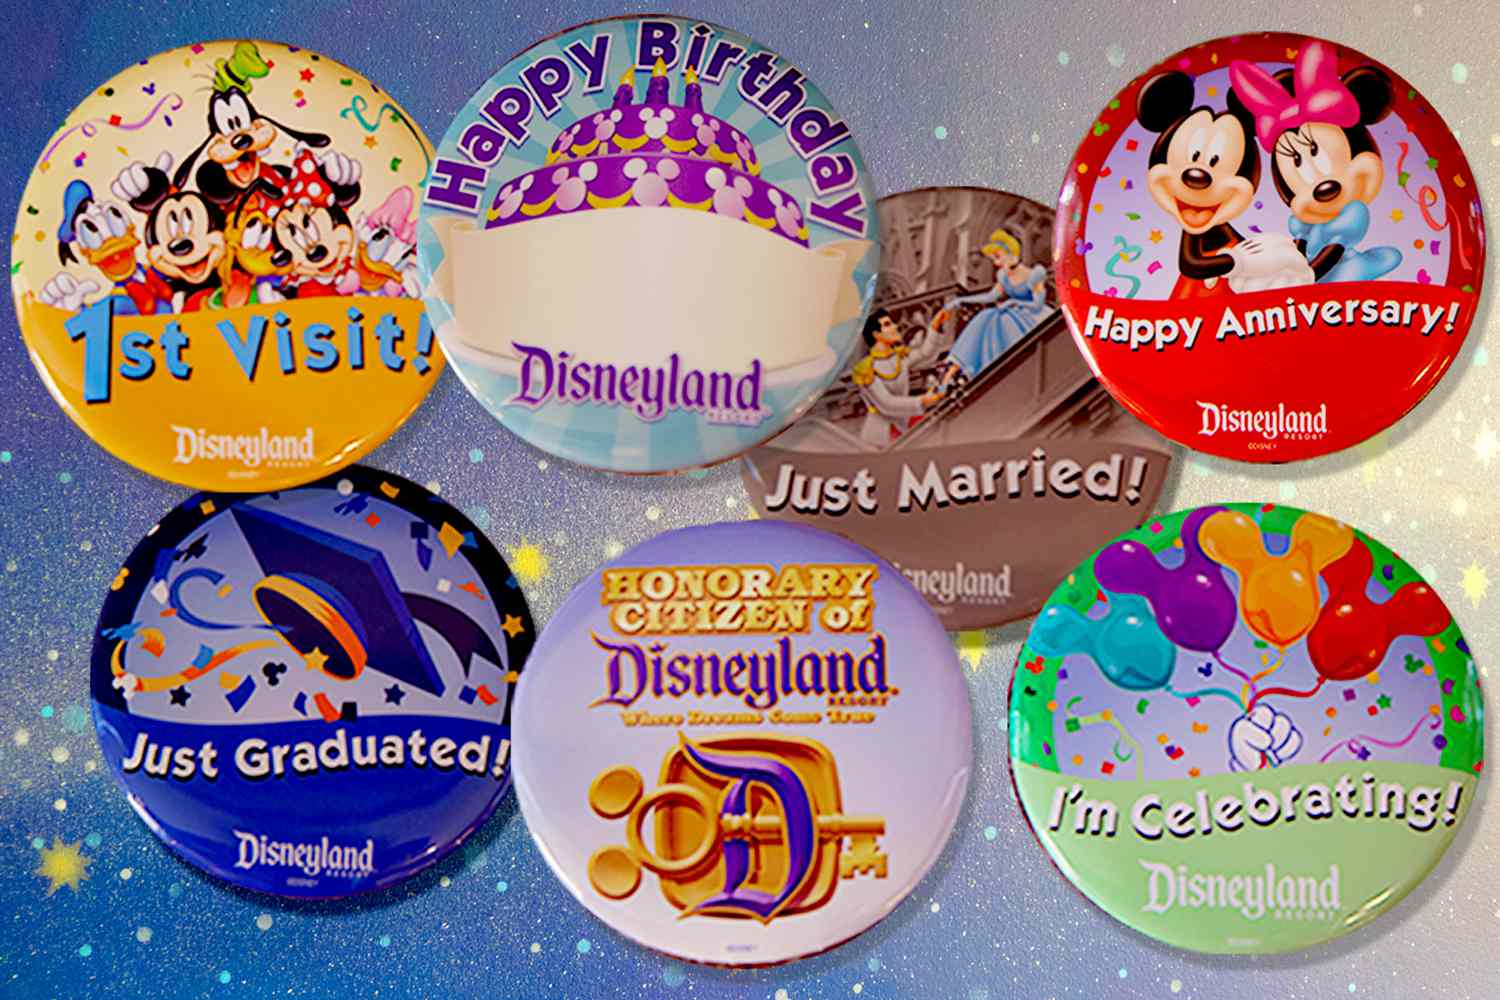 10 Things You Didn't Know You Could Do at Disneyland